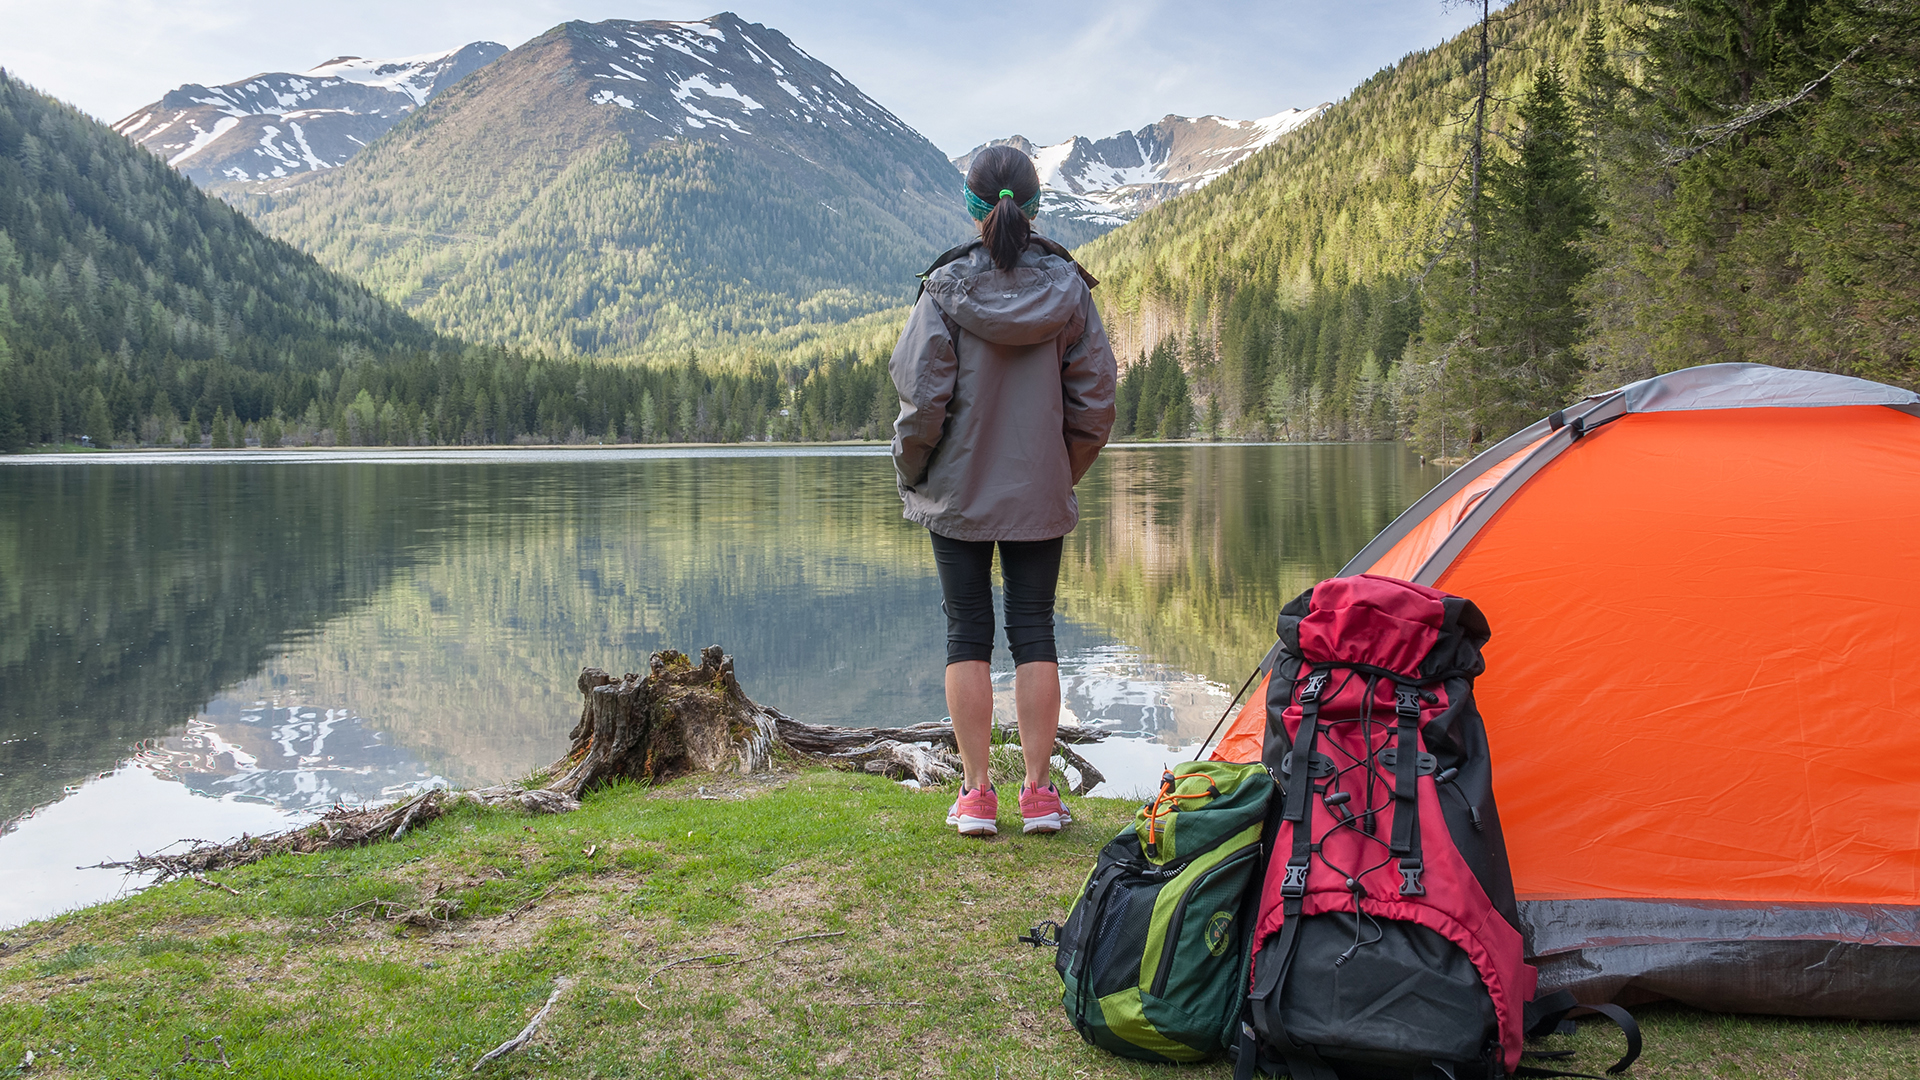 Gear Wallpaper Hd Camping Gear You Need To Pick Up Before Braving Nature